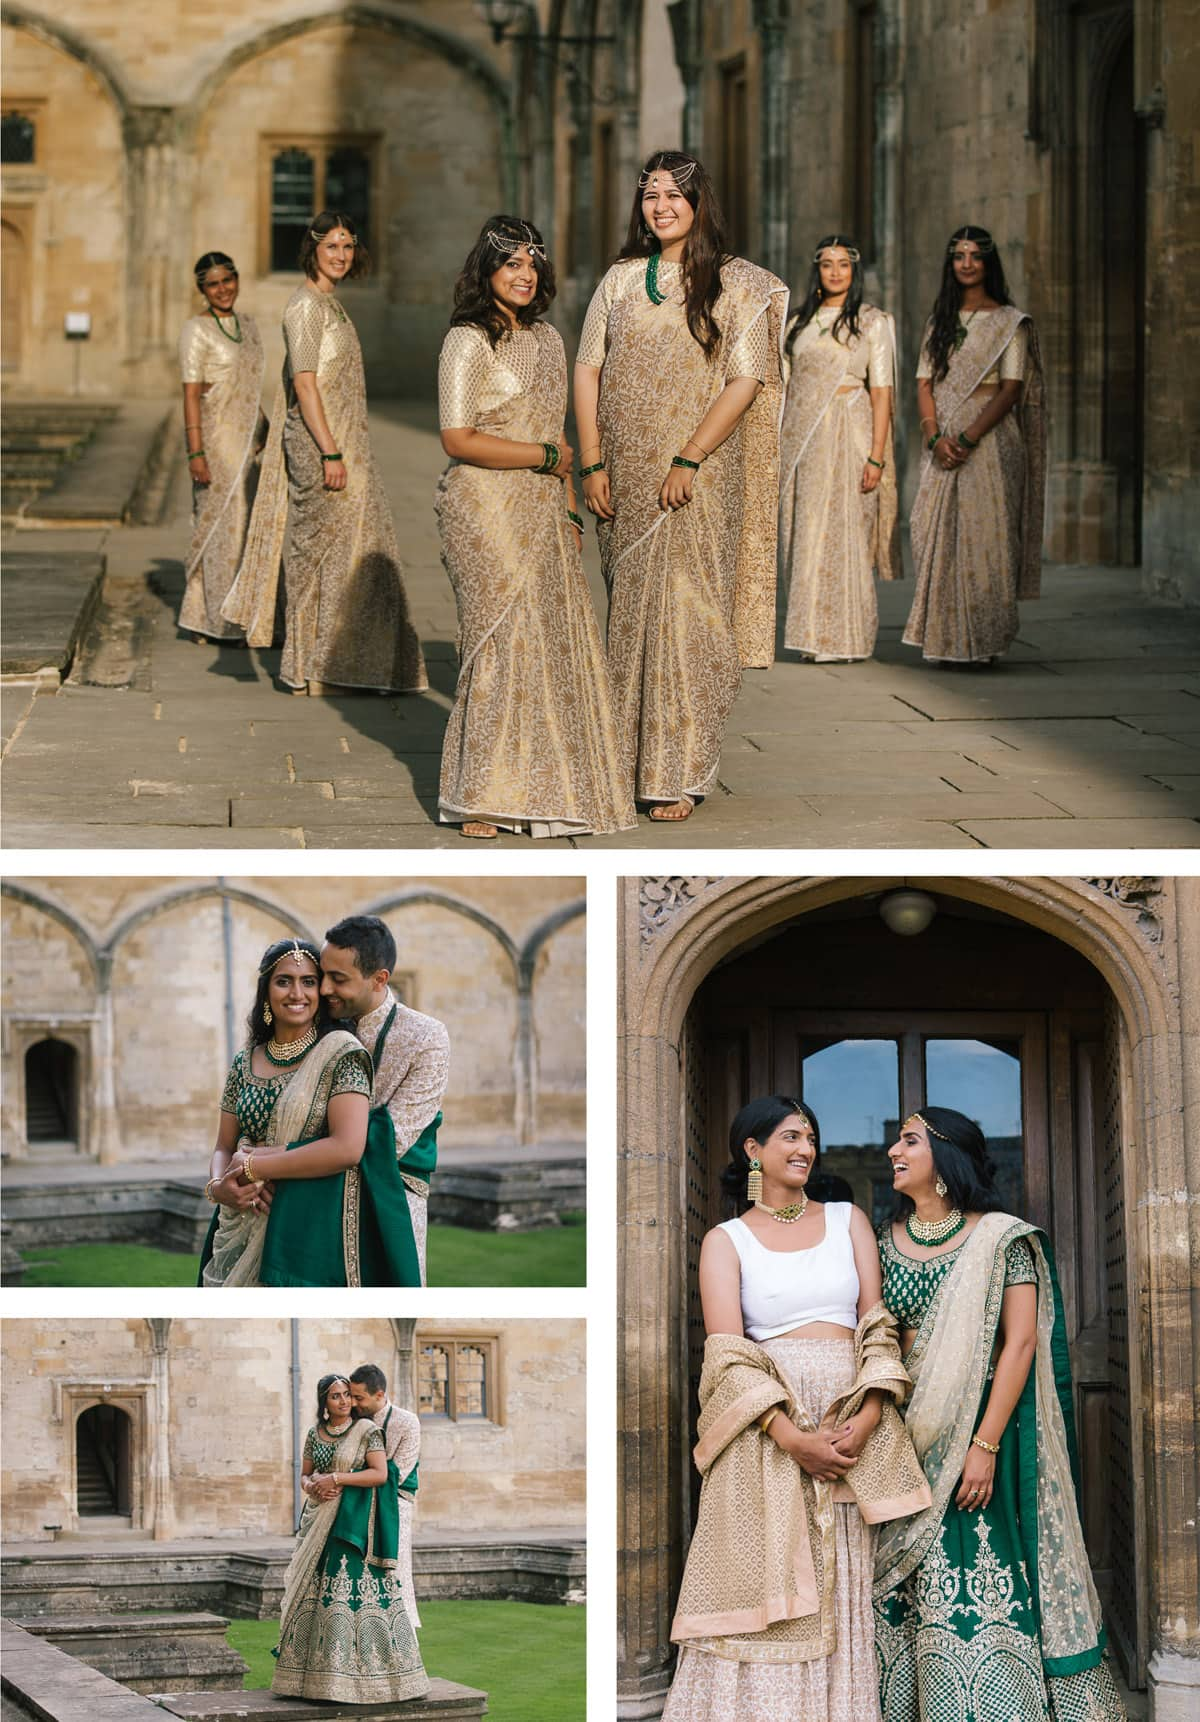 Bridal party and couples shots from Indian wedding at Christchurch college